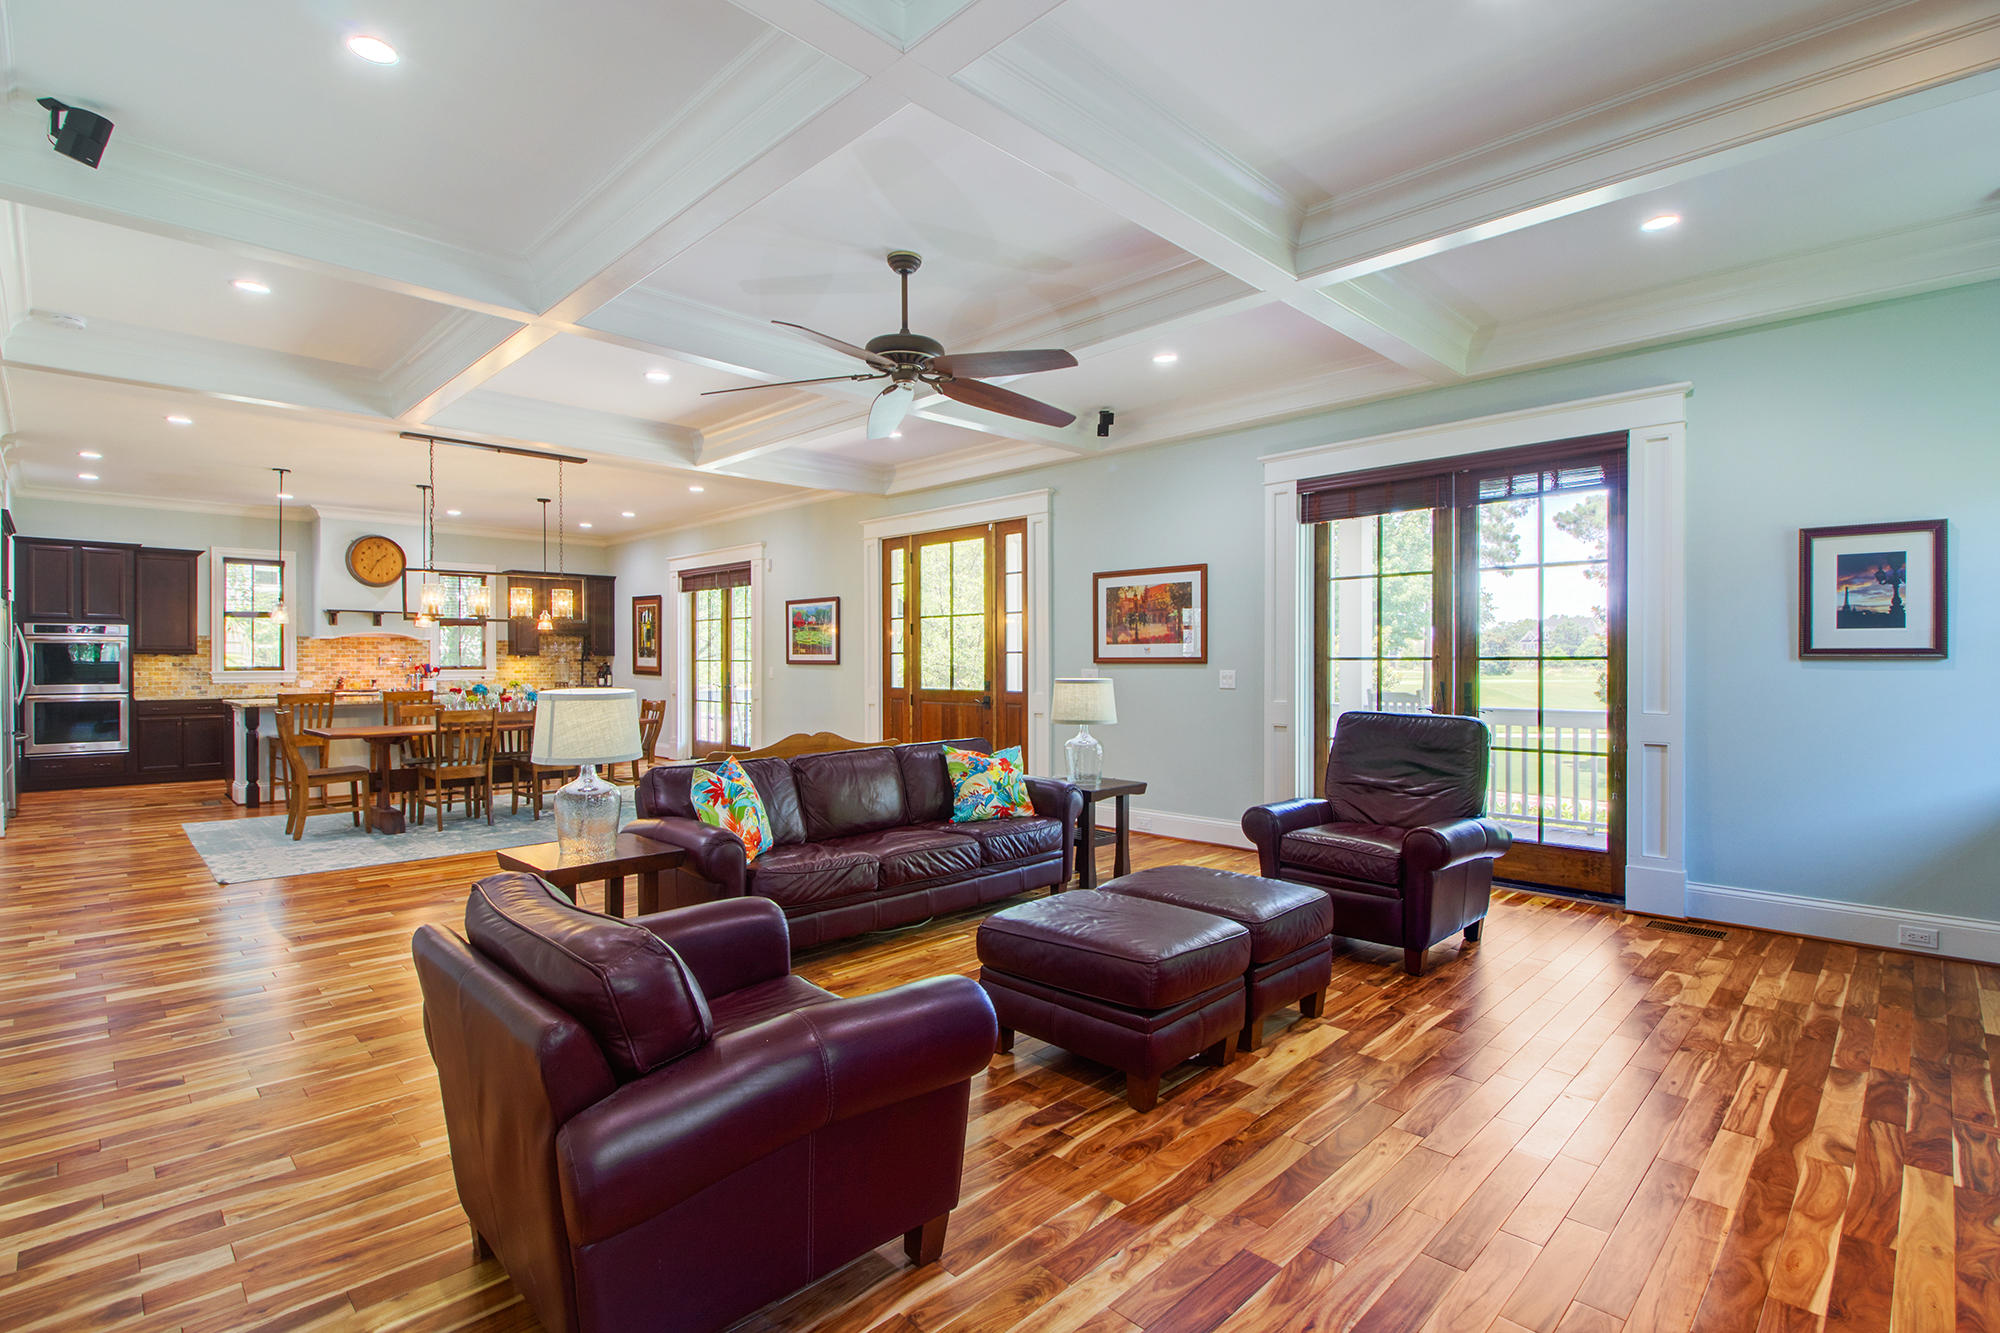 Daniel Island Park Homes For Sale - 131 Island Park, Daniel Island, SC - 25